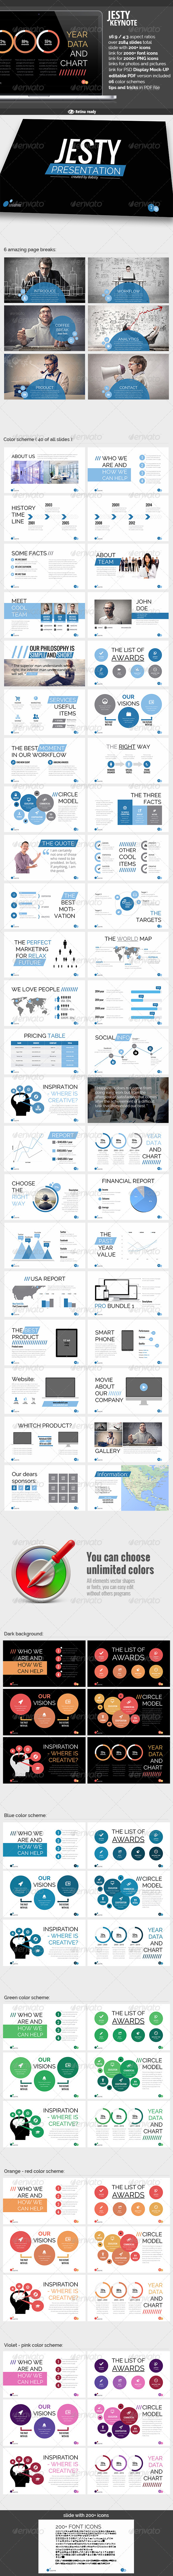 GraphicRiver Jesty Keynote presentation 8390175